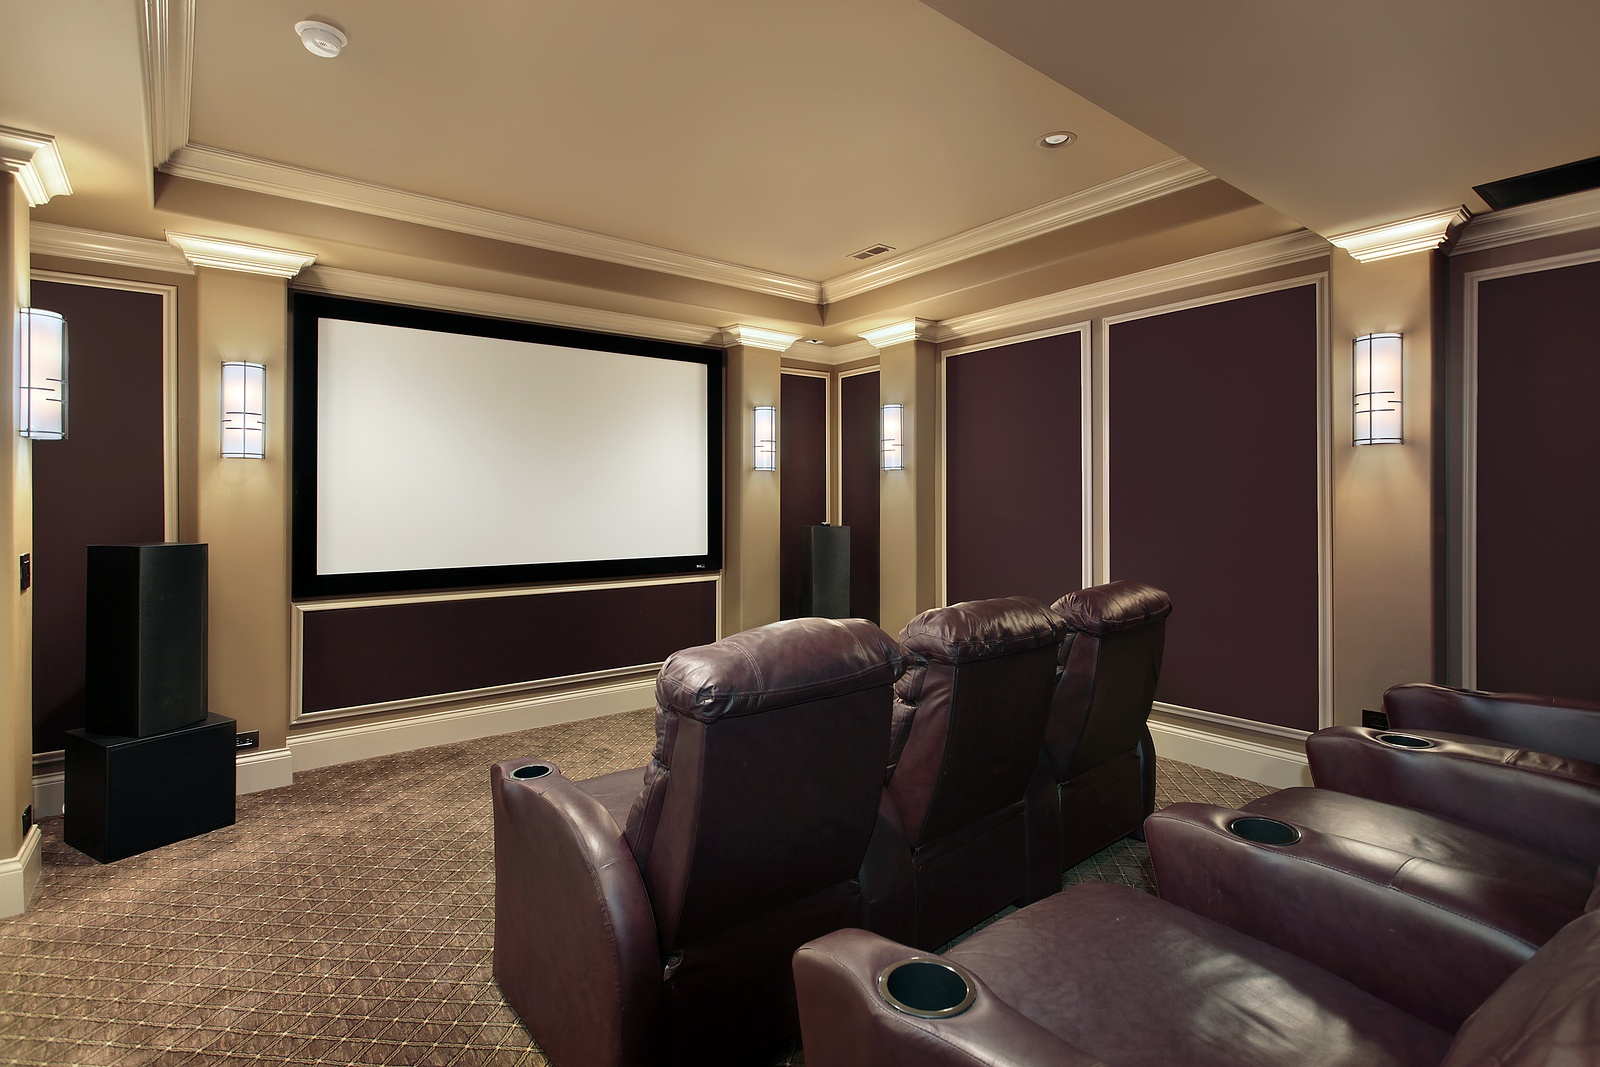 bigstock-Theater-Room-With-Lounge-Chair-7213629.jpg